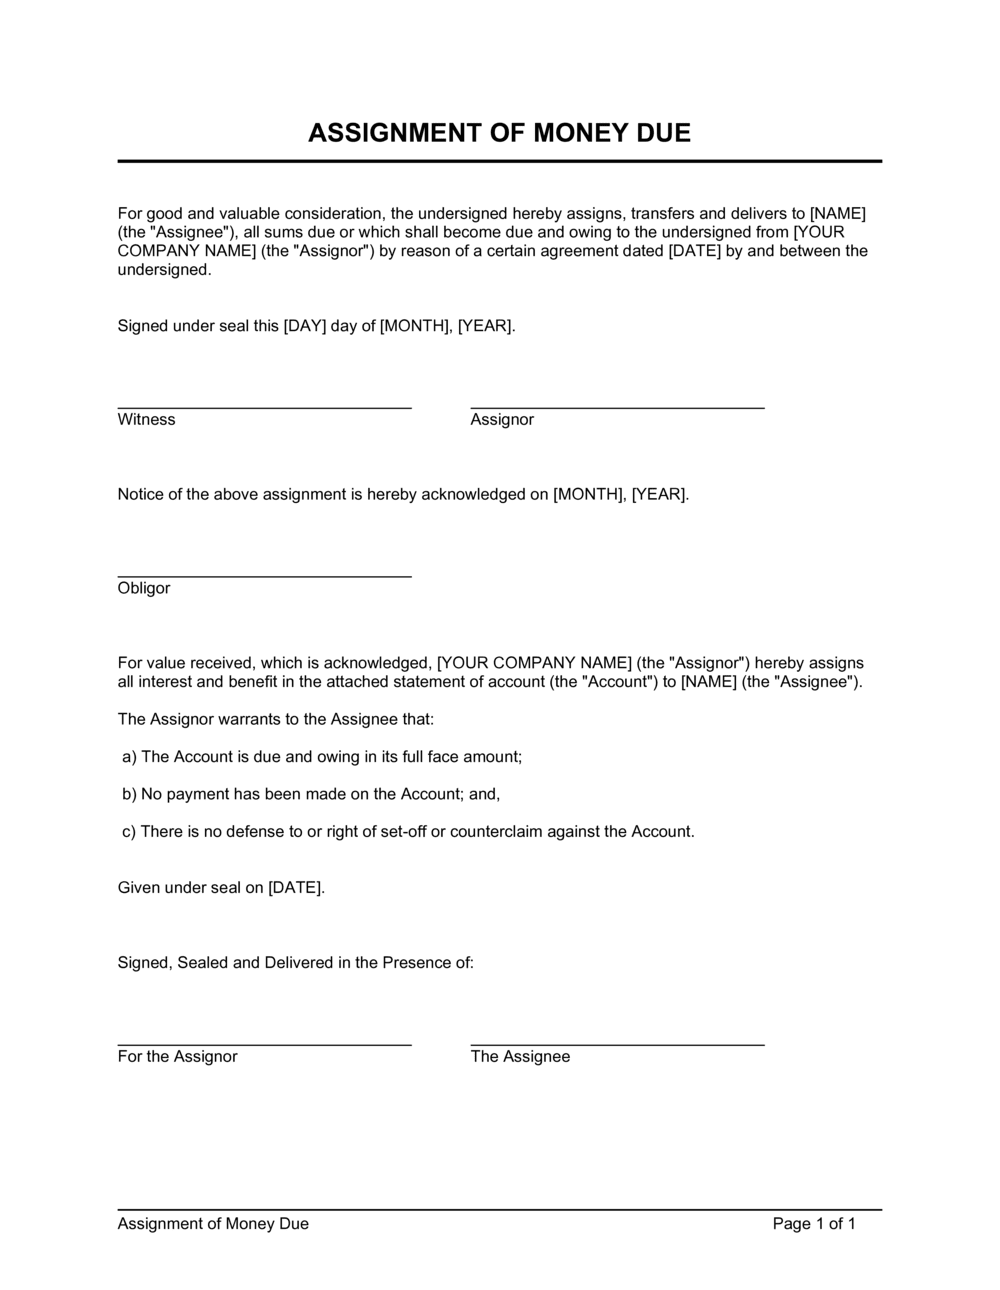 Business-in-a-Box's Assignment of Money Due Template